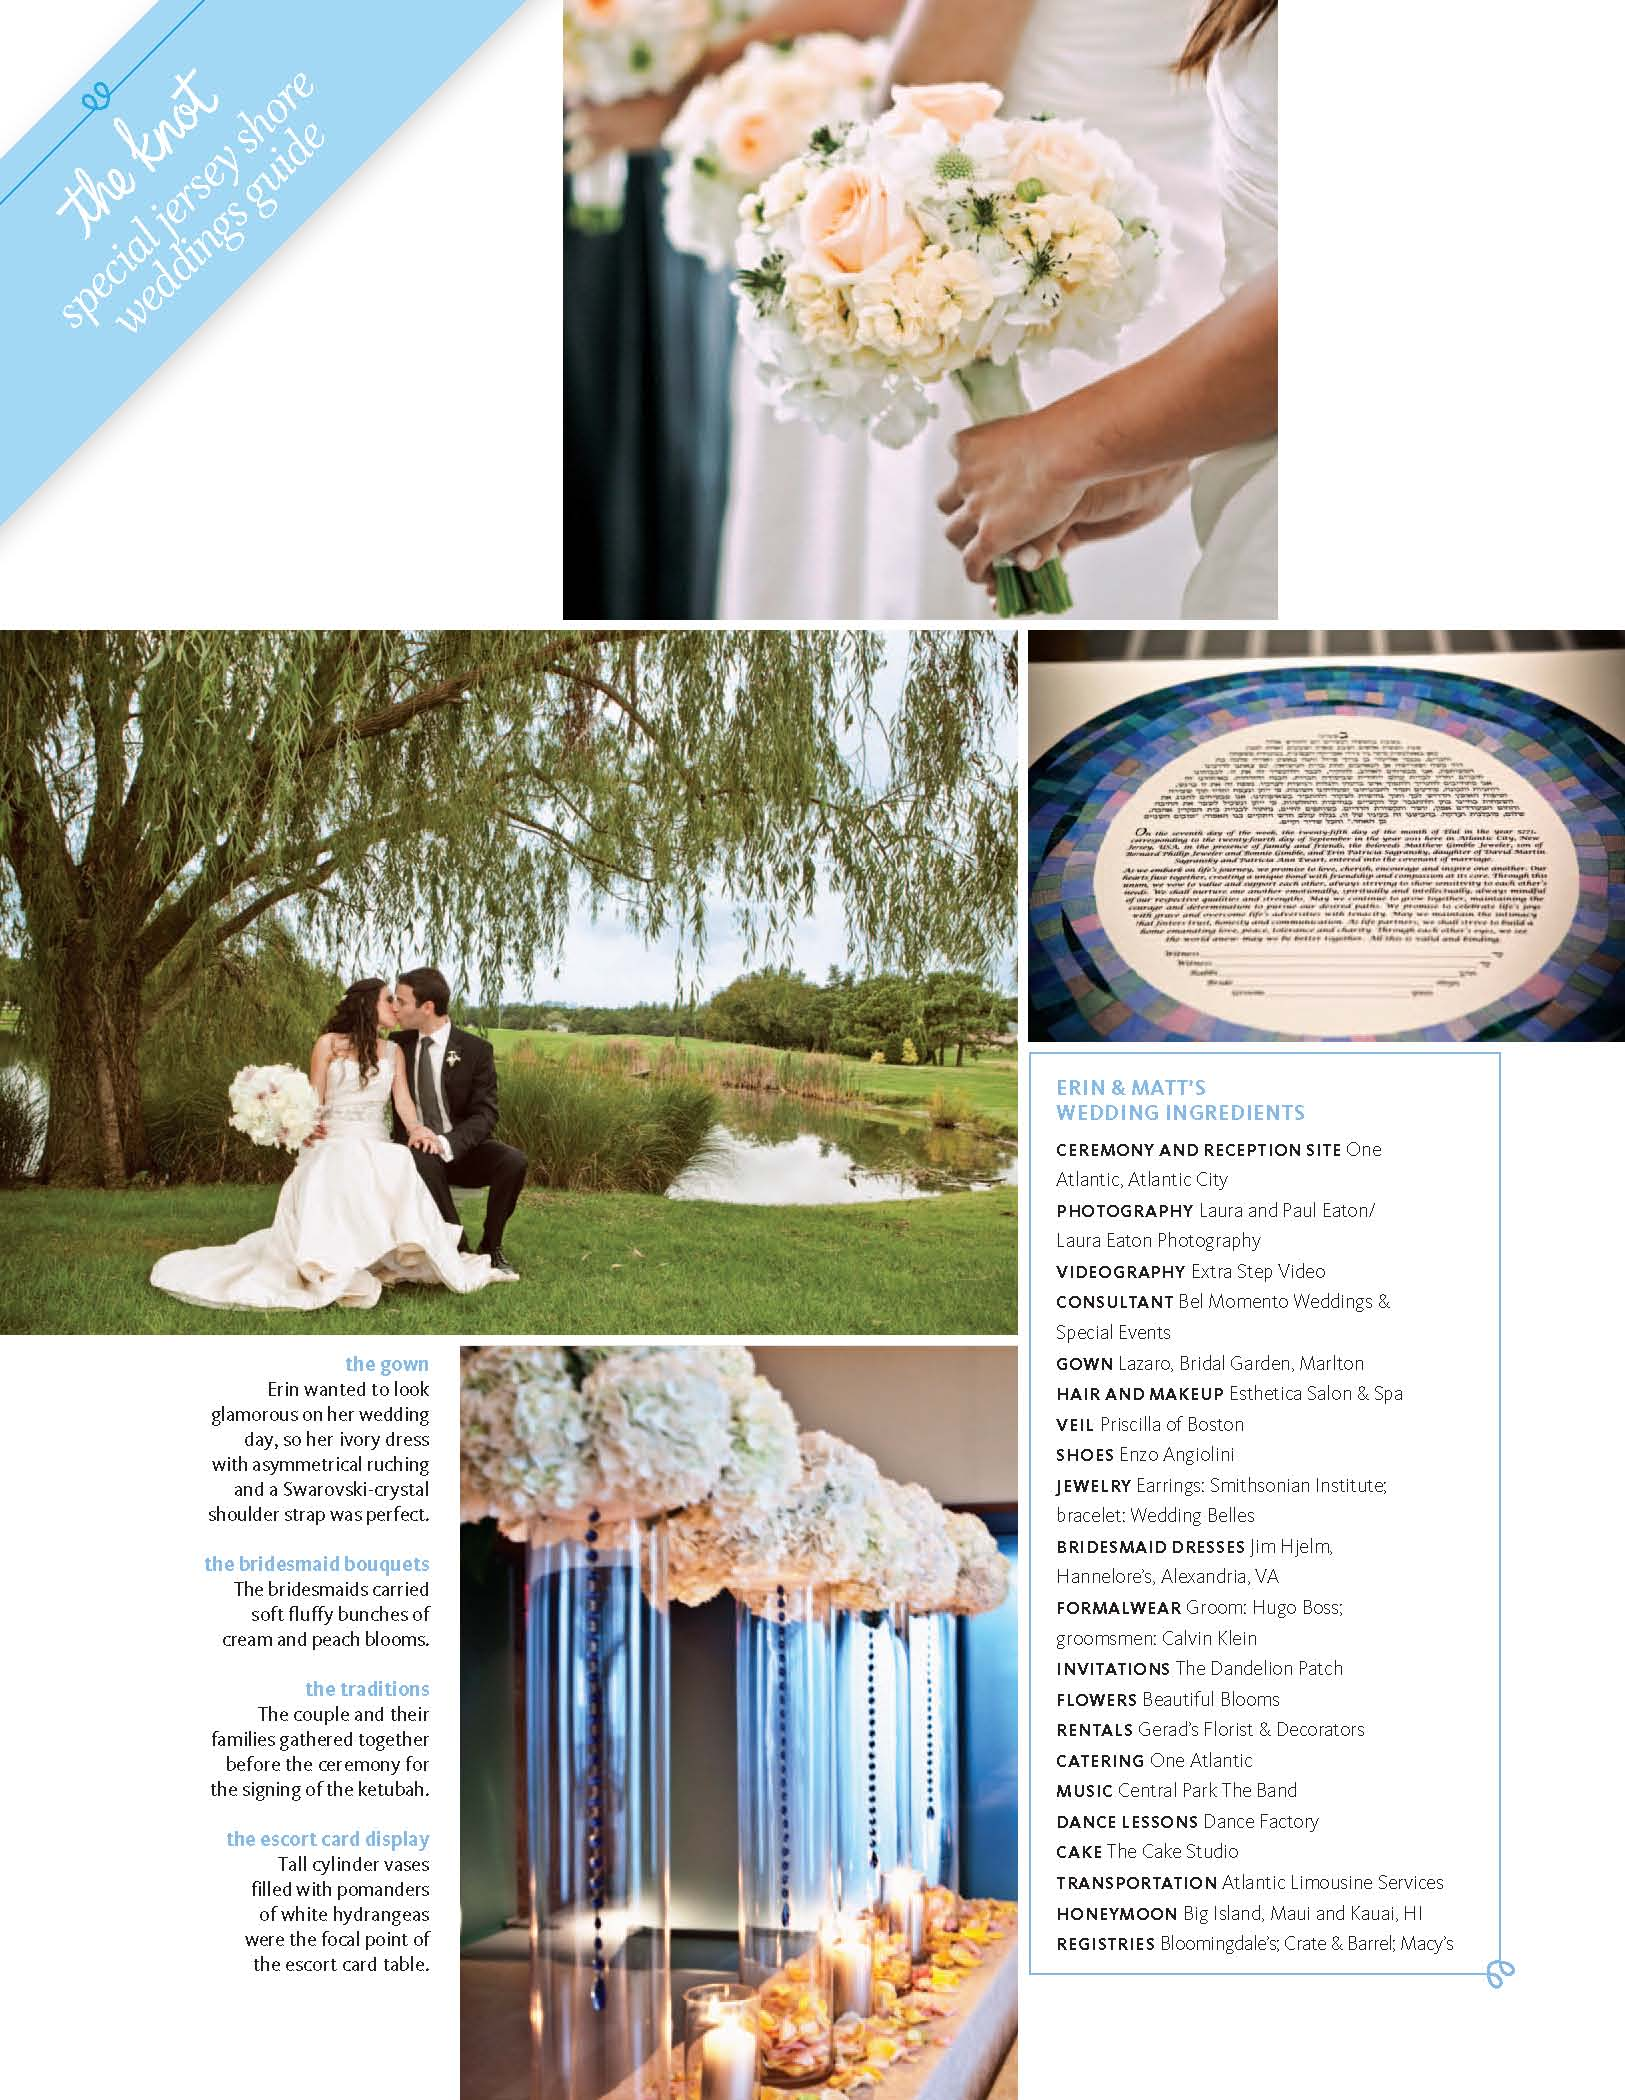 Erin and Matt's One Atlantic Wedding Photography in The Knot Magazine